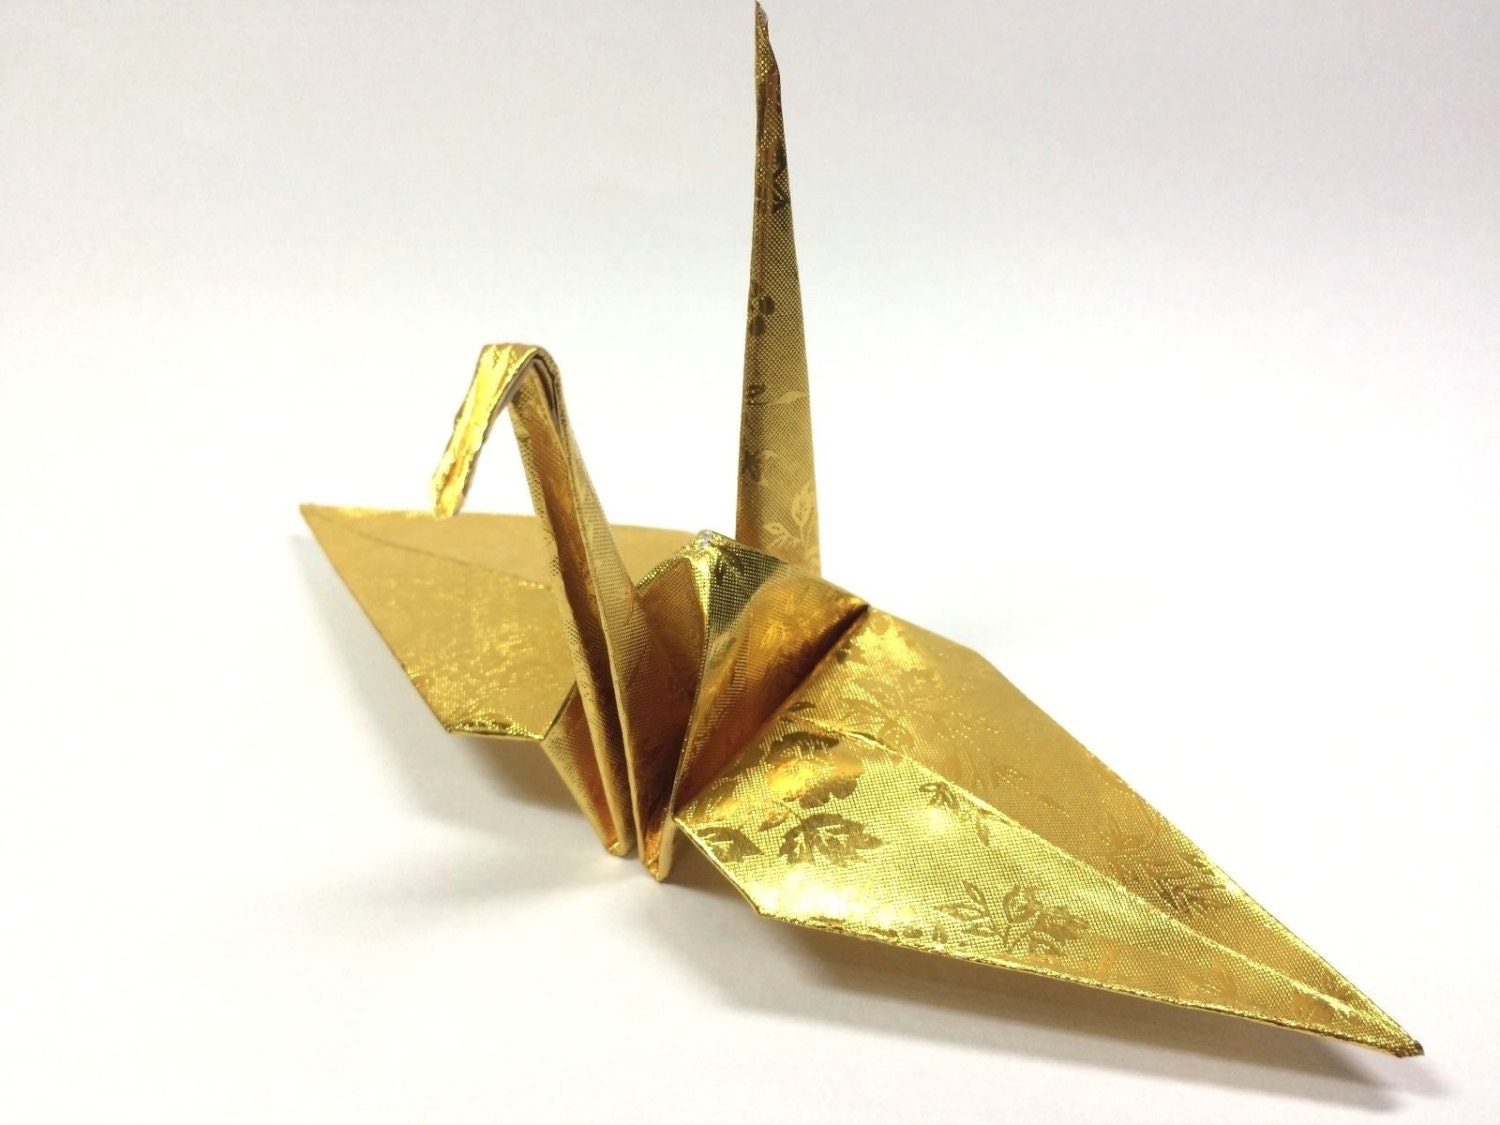 100 origami paper crane in gold with rose pattern 6 inch